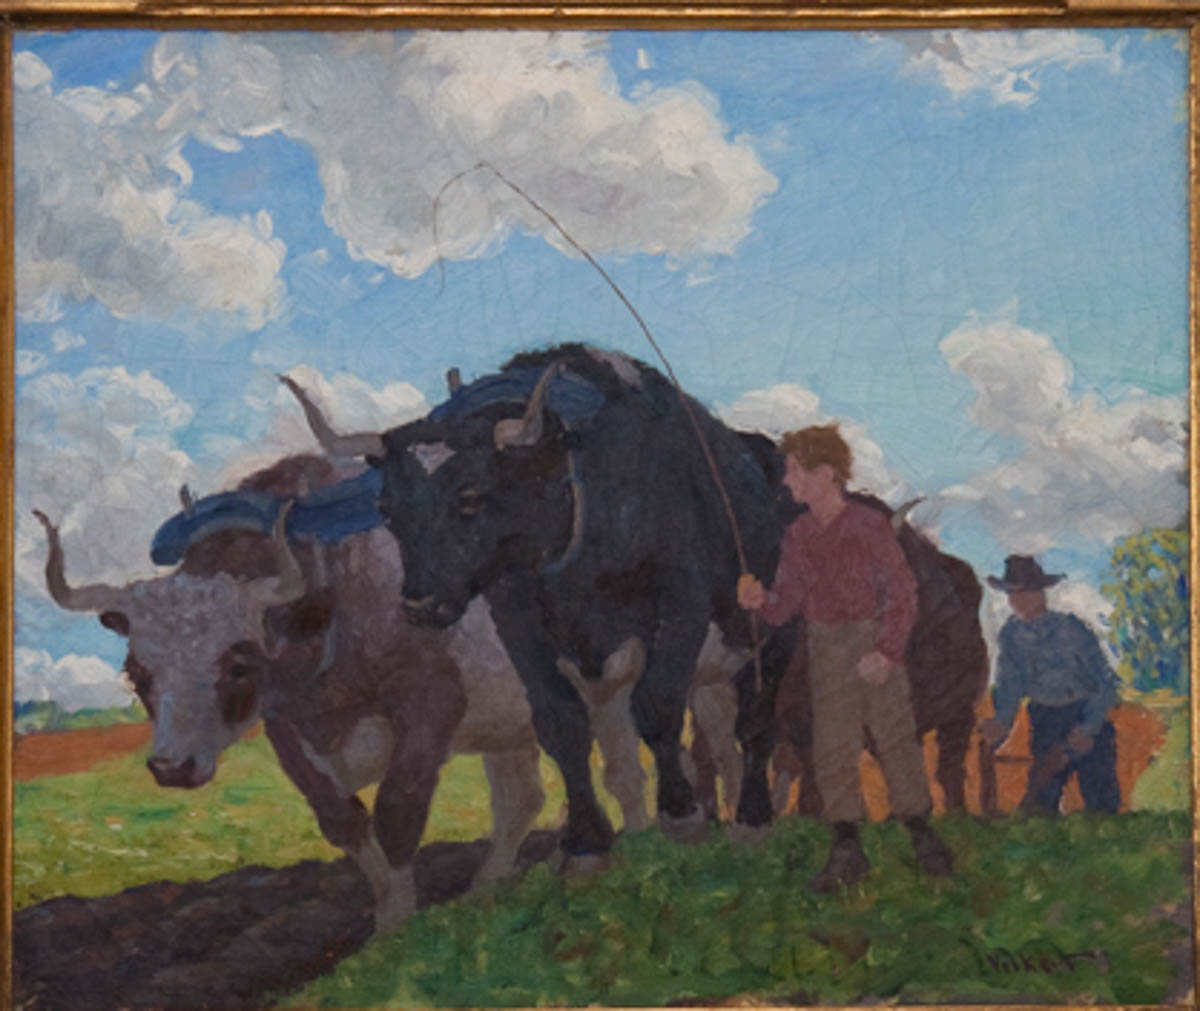 Untitled [Man and Boy Plowing with Oxen]